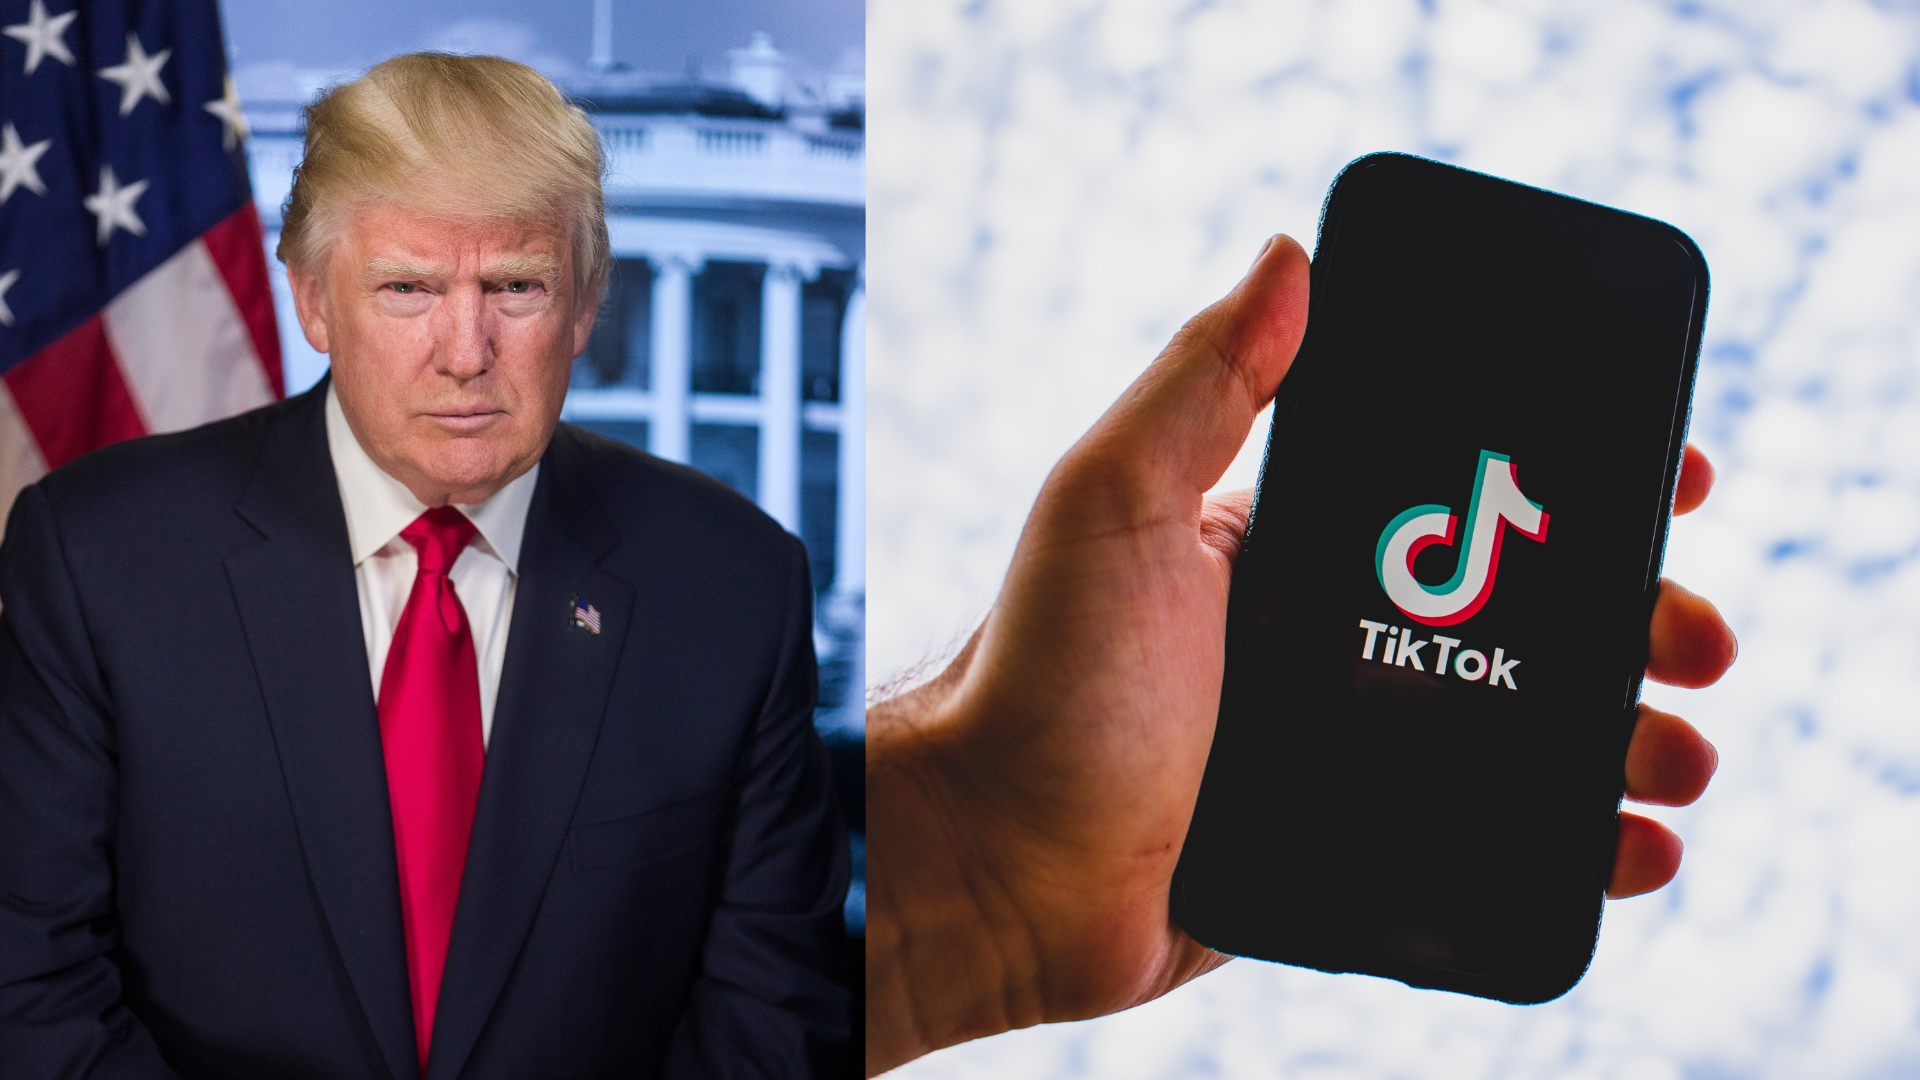 Trump Refuses to Extend Deadline on TikTok Sale